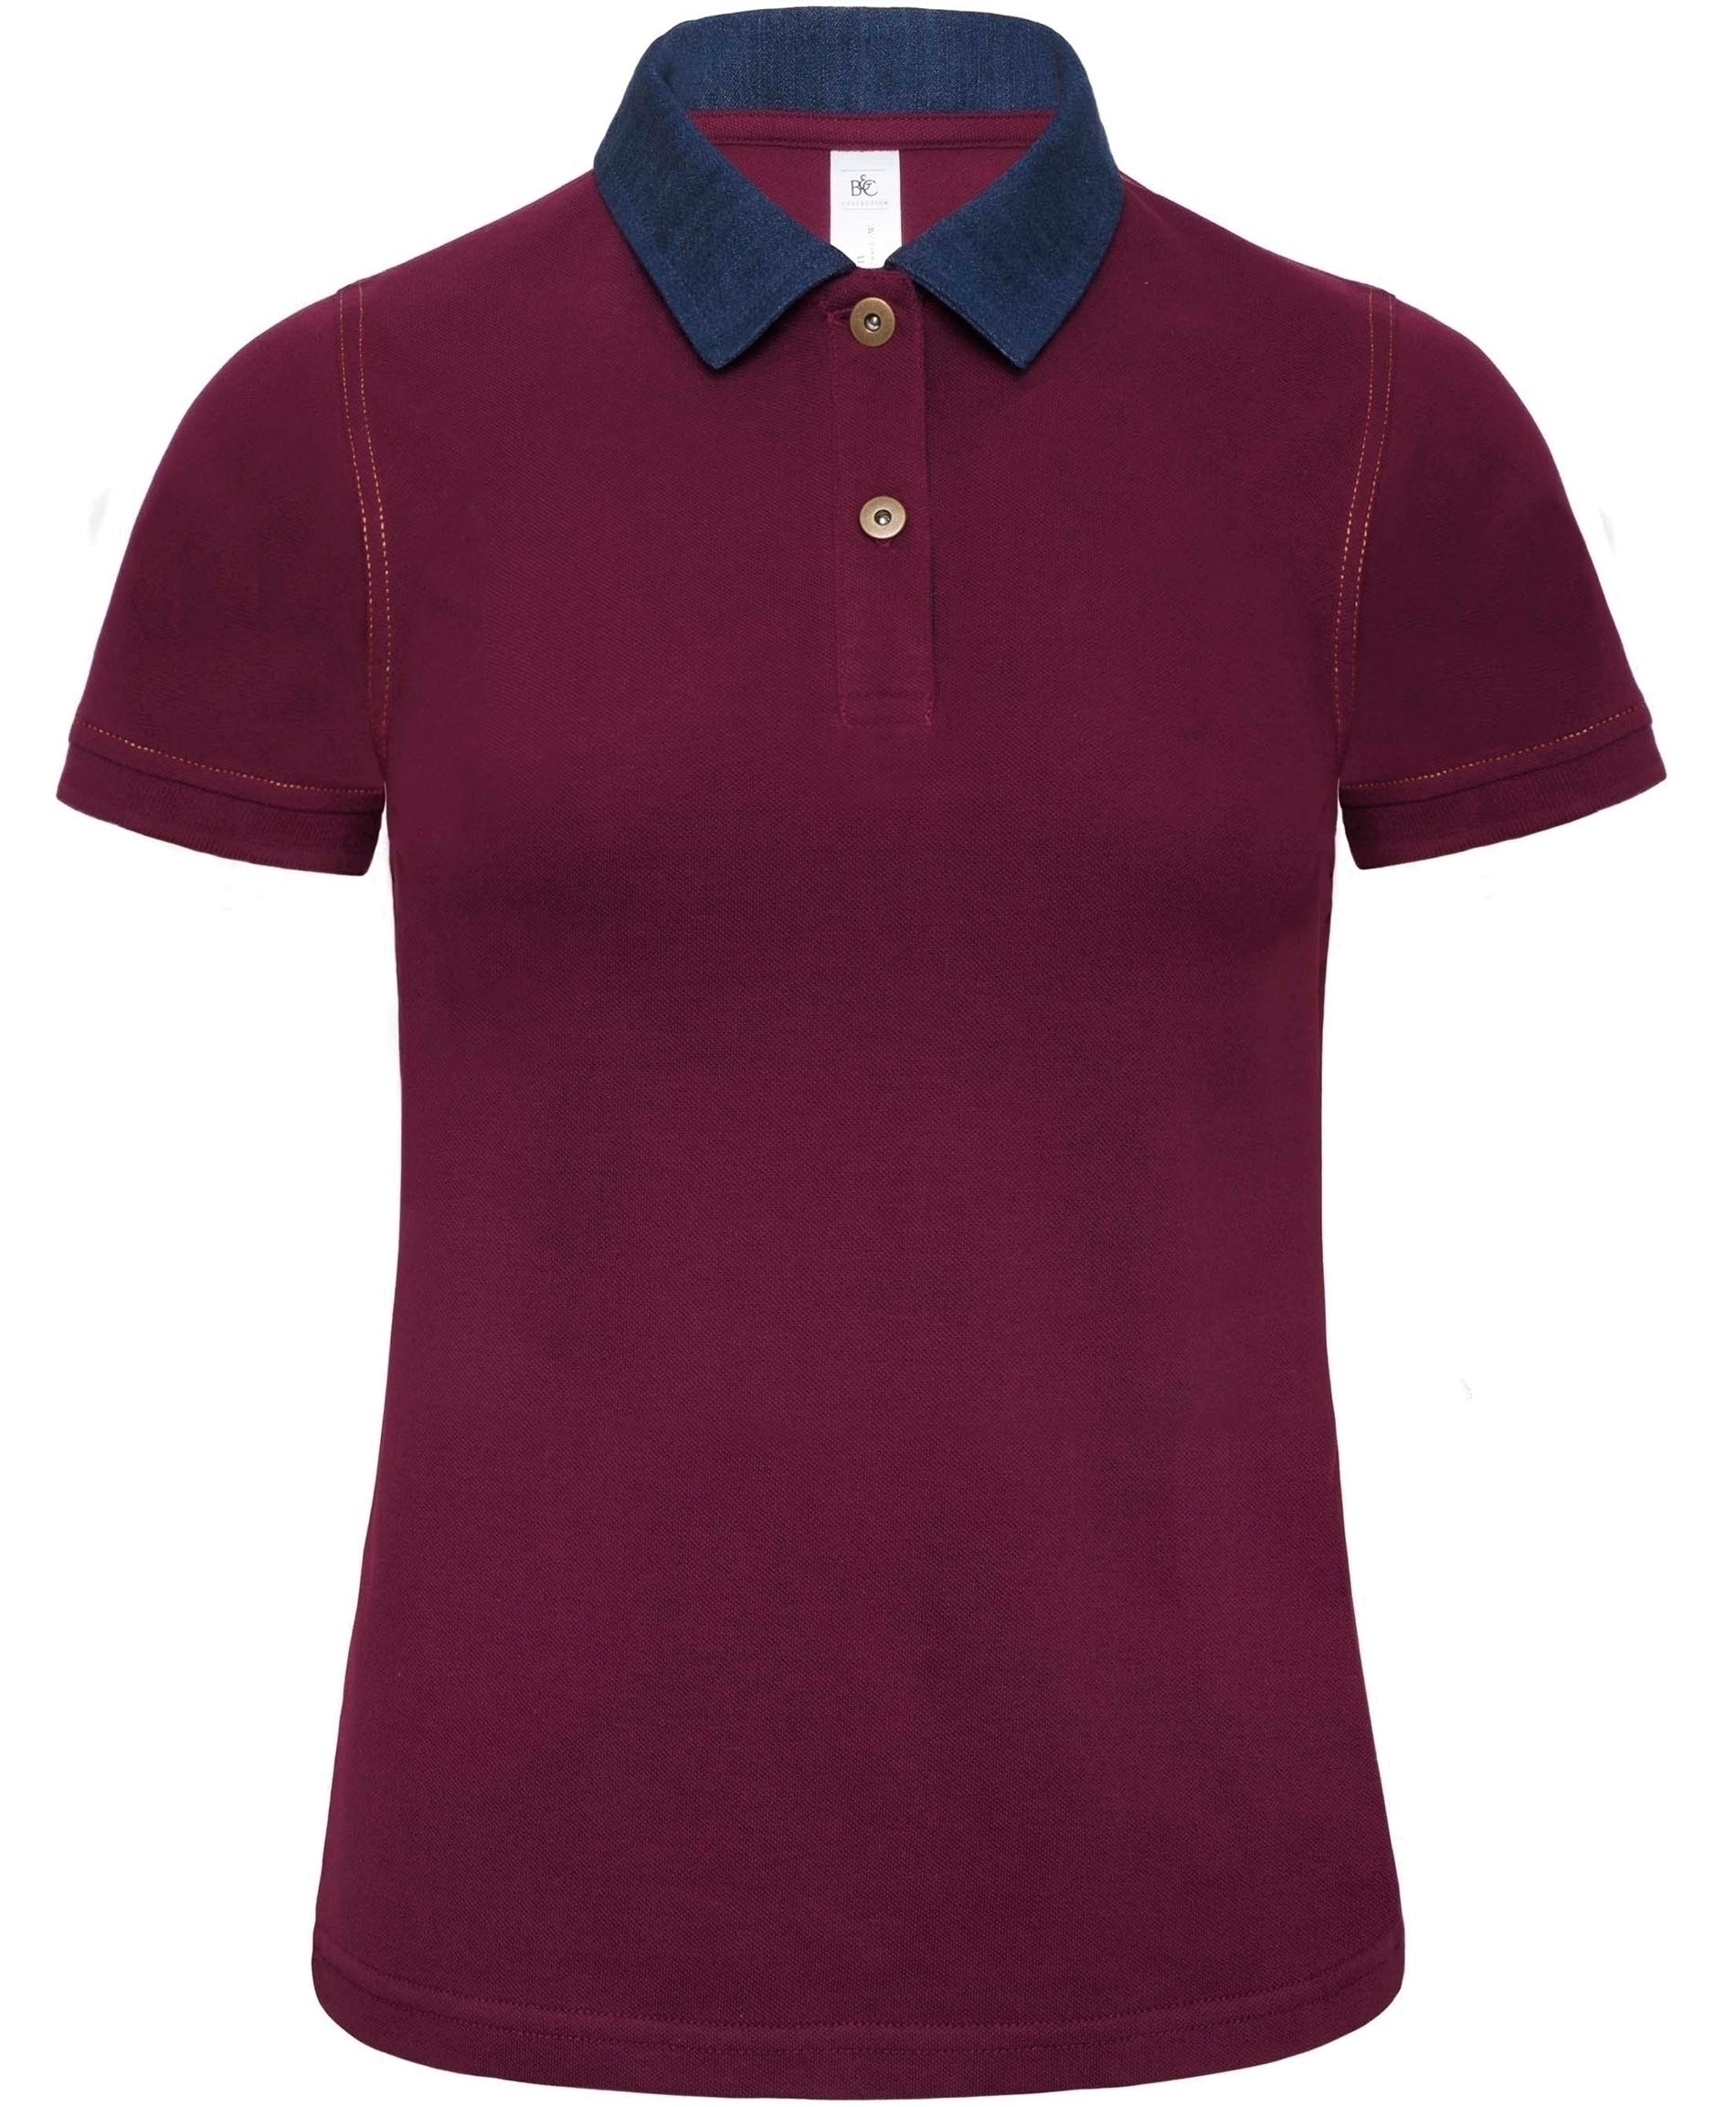 POLO FEMME DNM FORWARD Denim / Burgundy Bleu